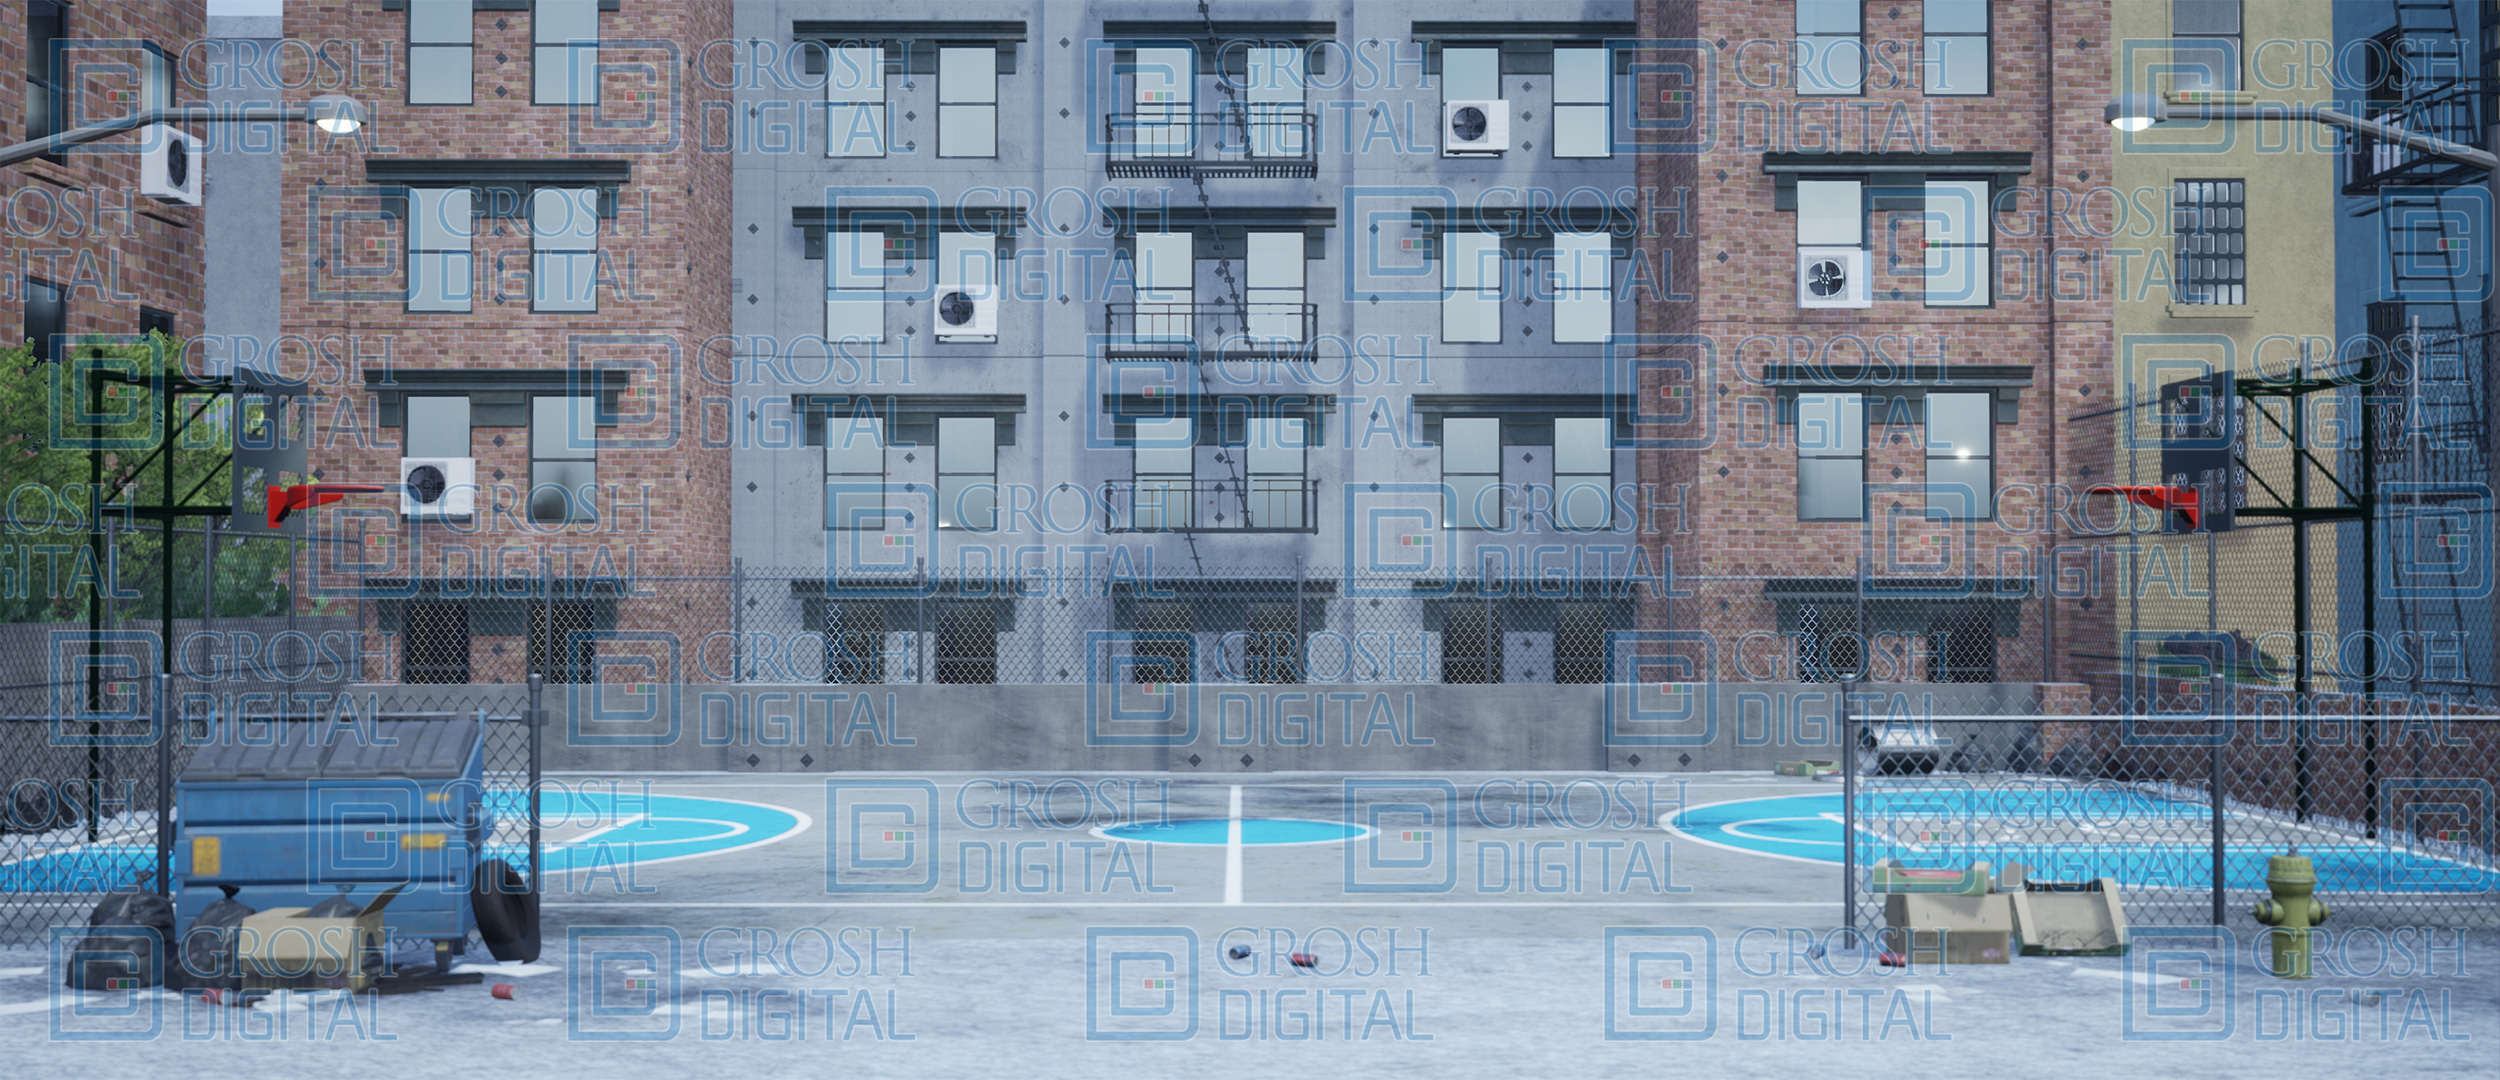 Daytime Inner City Projected Backdrop for Exteriors, Streets, West Side Story